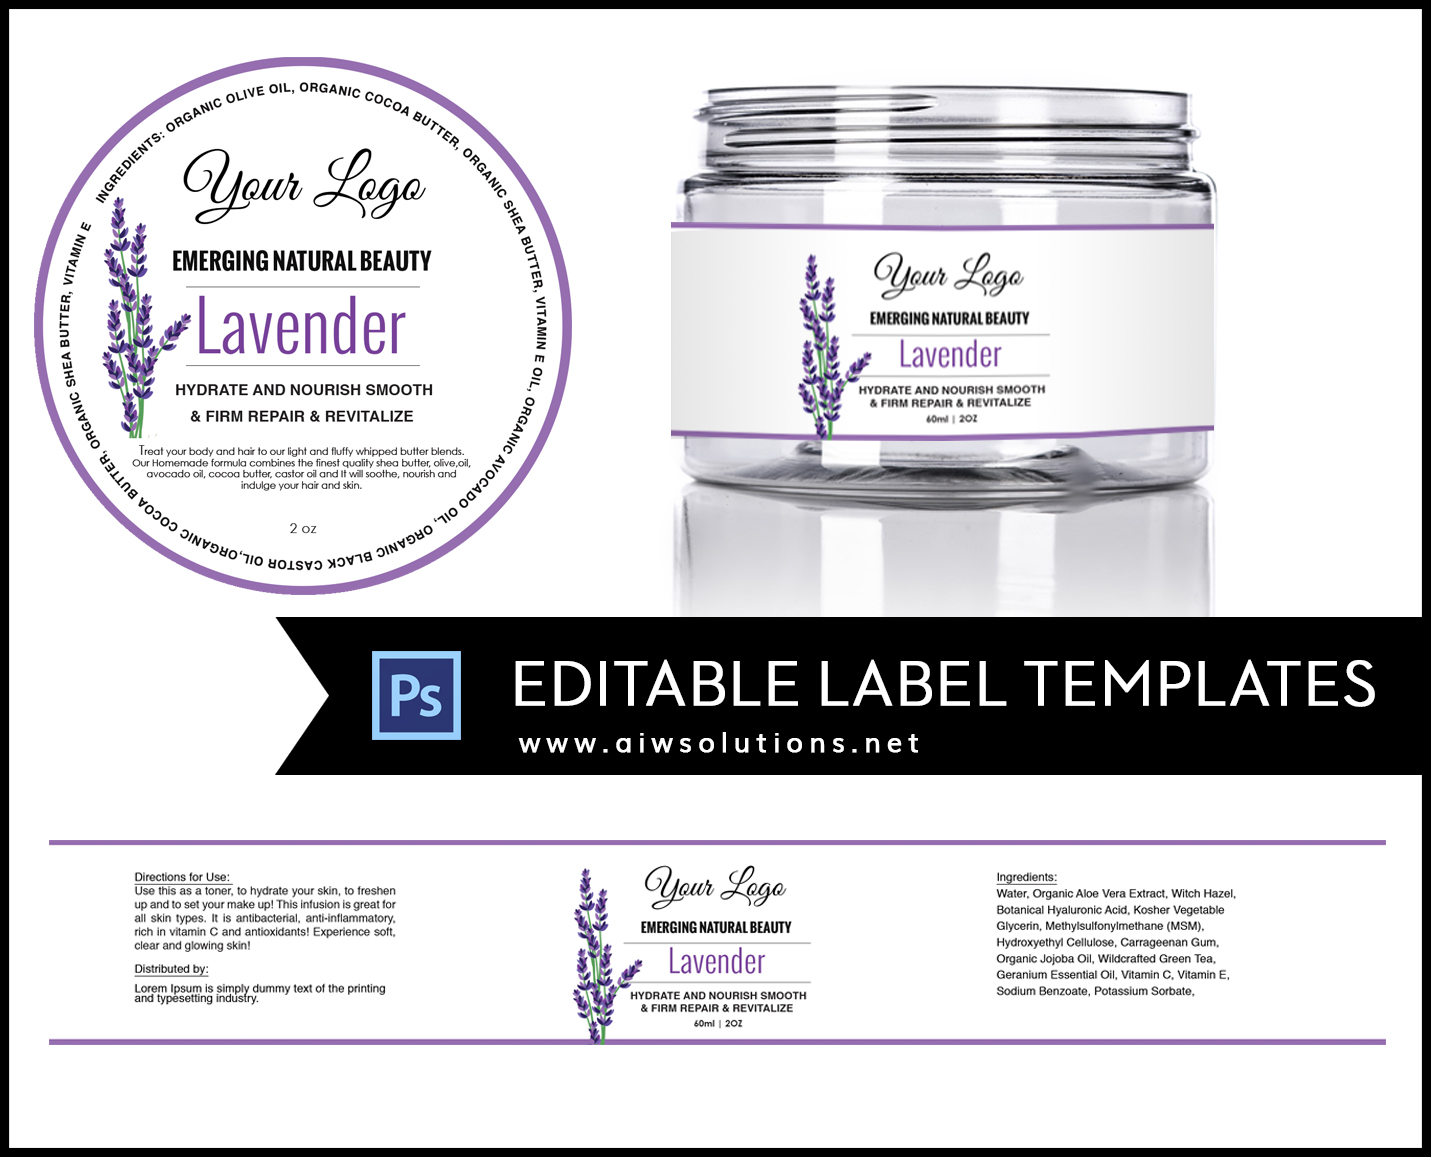 Label template ID11 | aiwsolutions